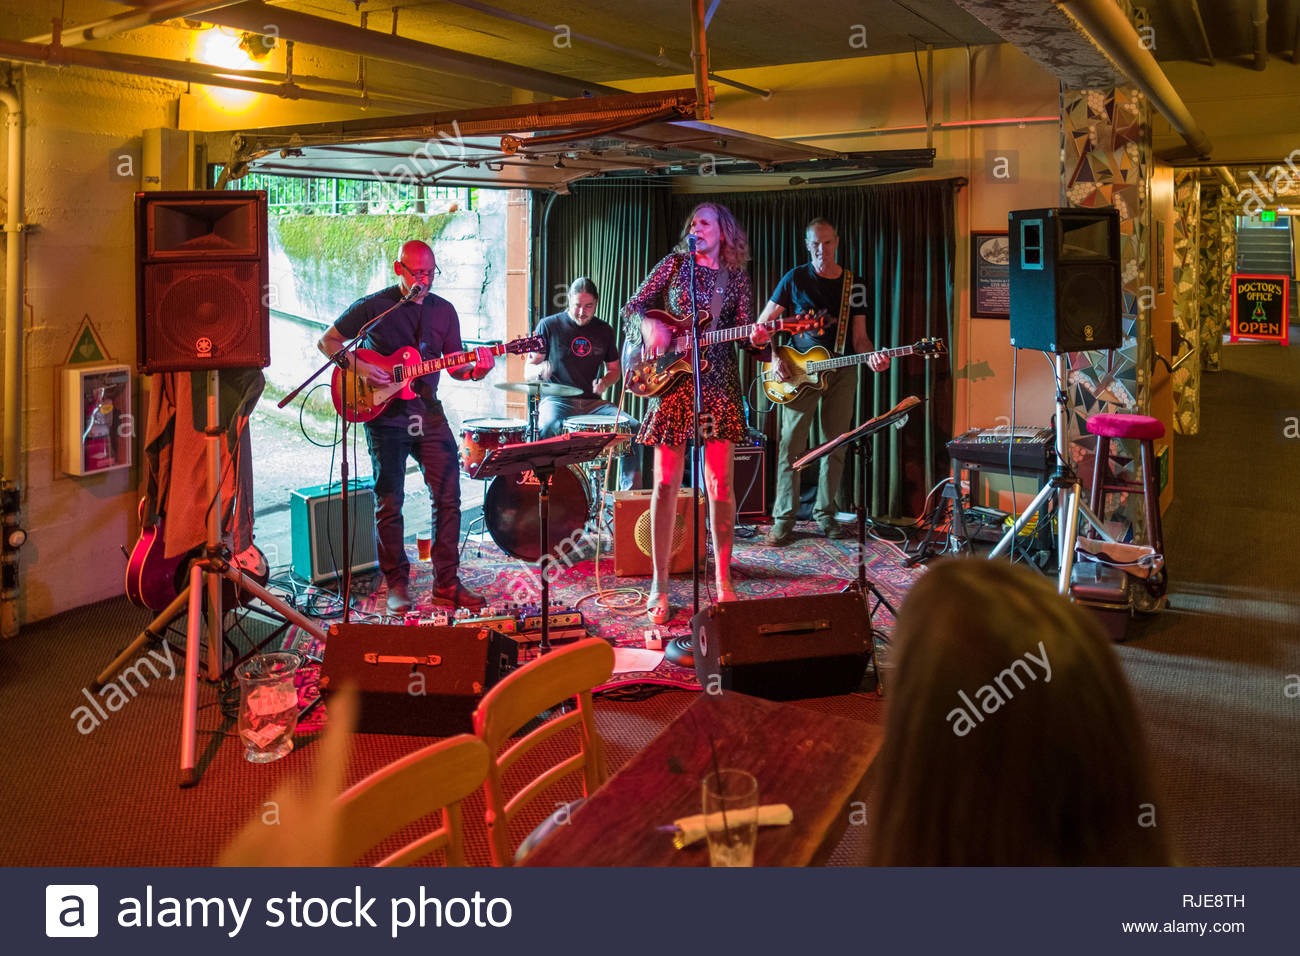 Female singer and musicians performing live music in the basement of the McMenamins Grand Lodge, Forest Grove, Washington County, Oregon, USA - Stock Image